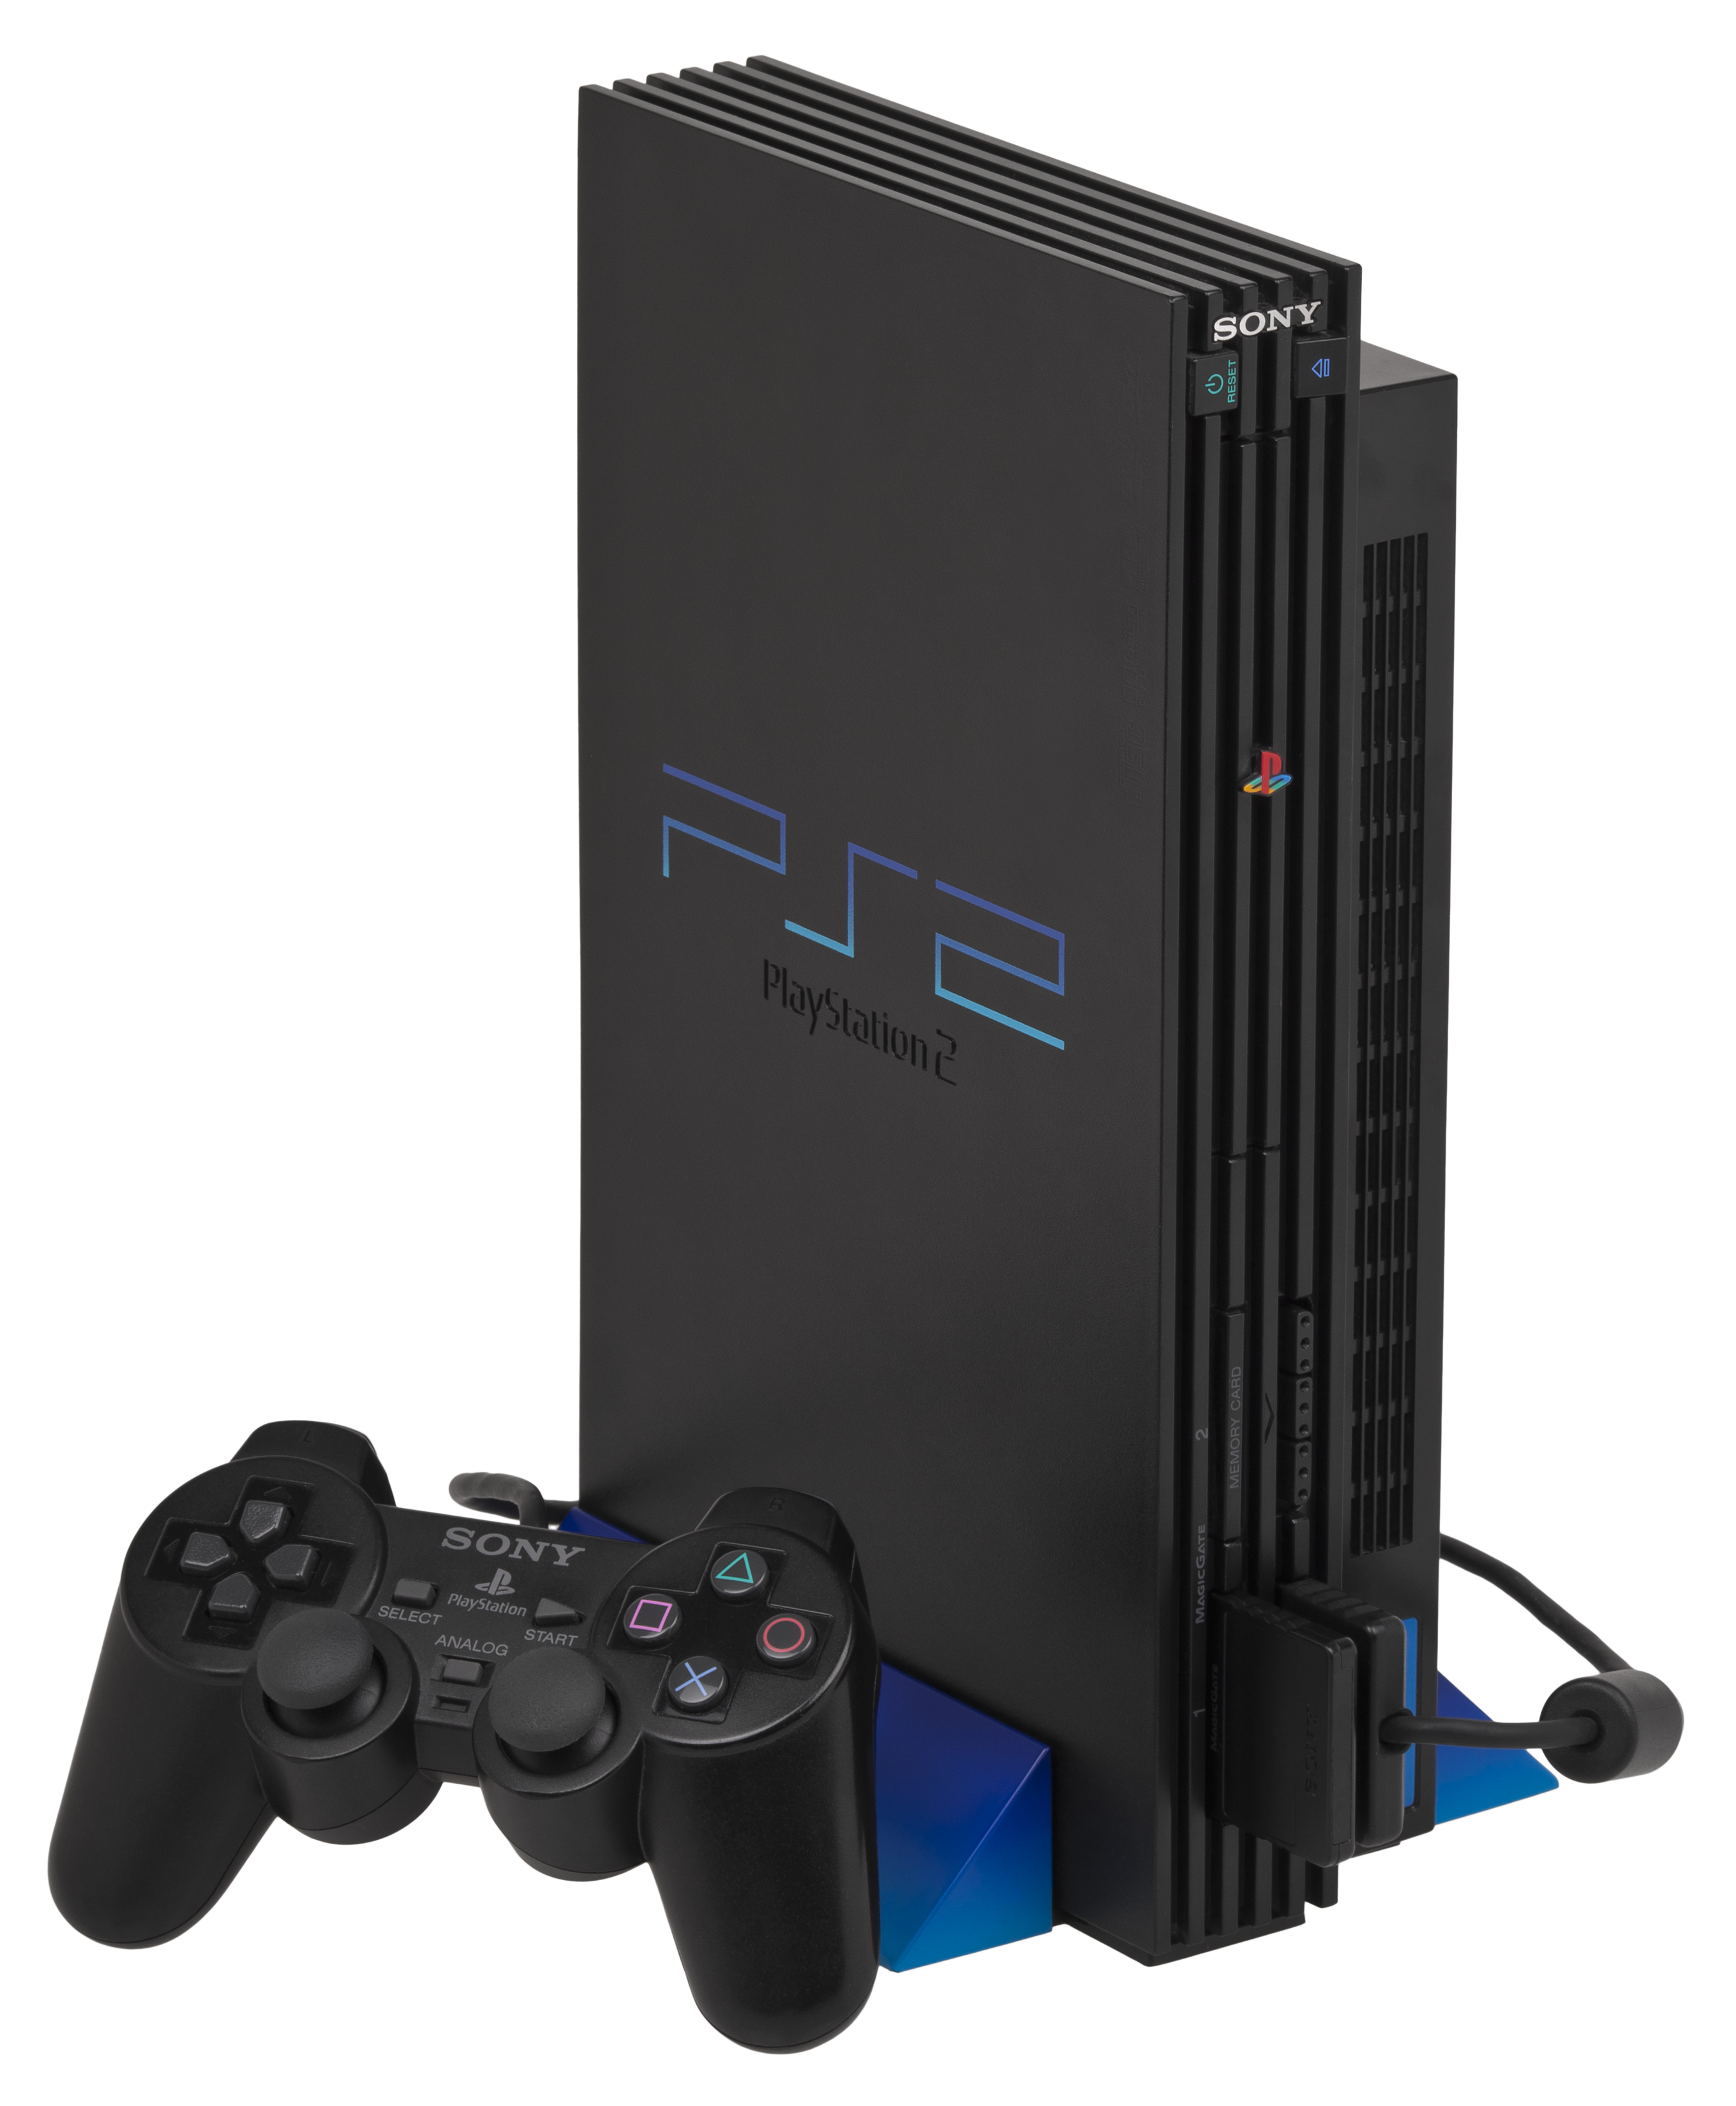 Playstation 2 png. File ps fat console